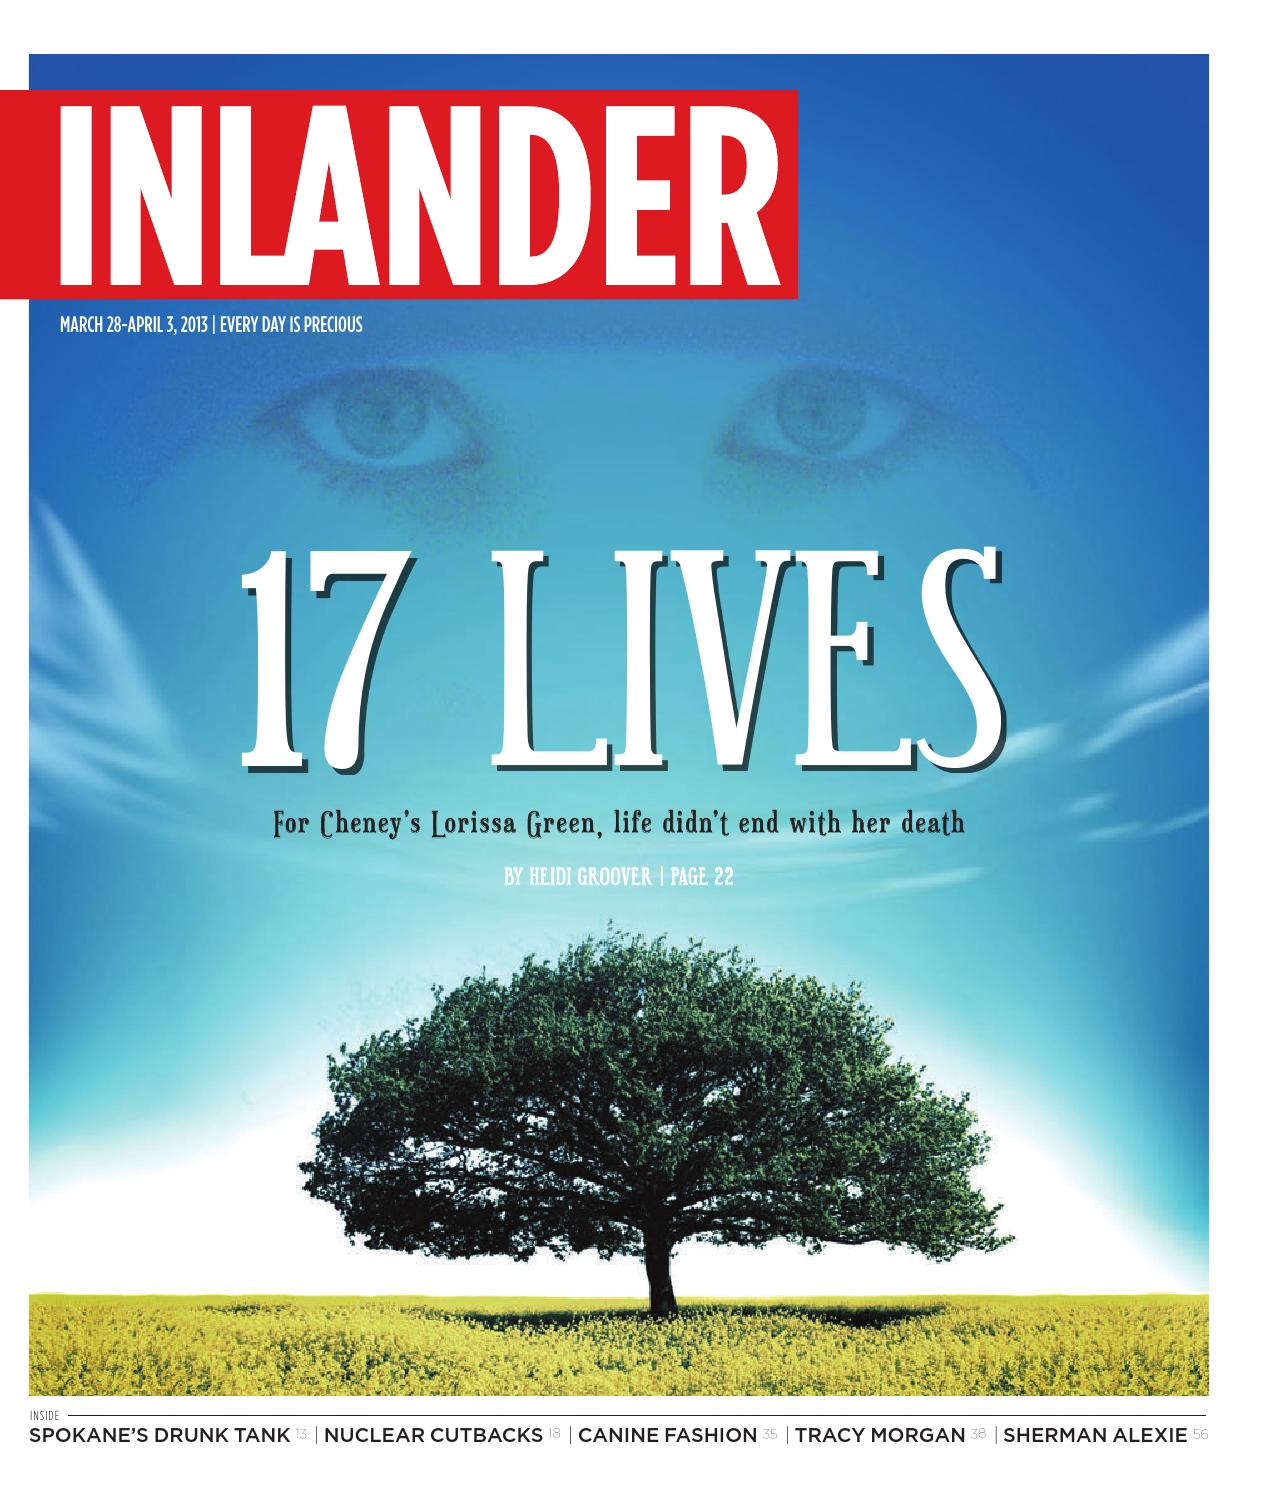 Inlander 3/28/2013 by The Inlander - issuu